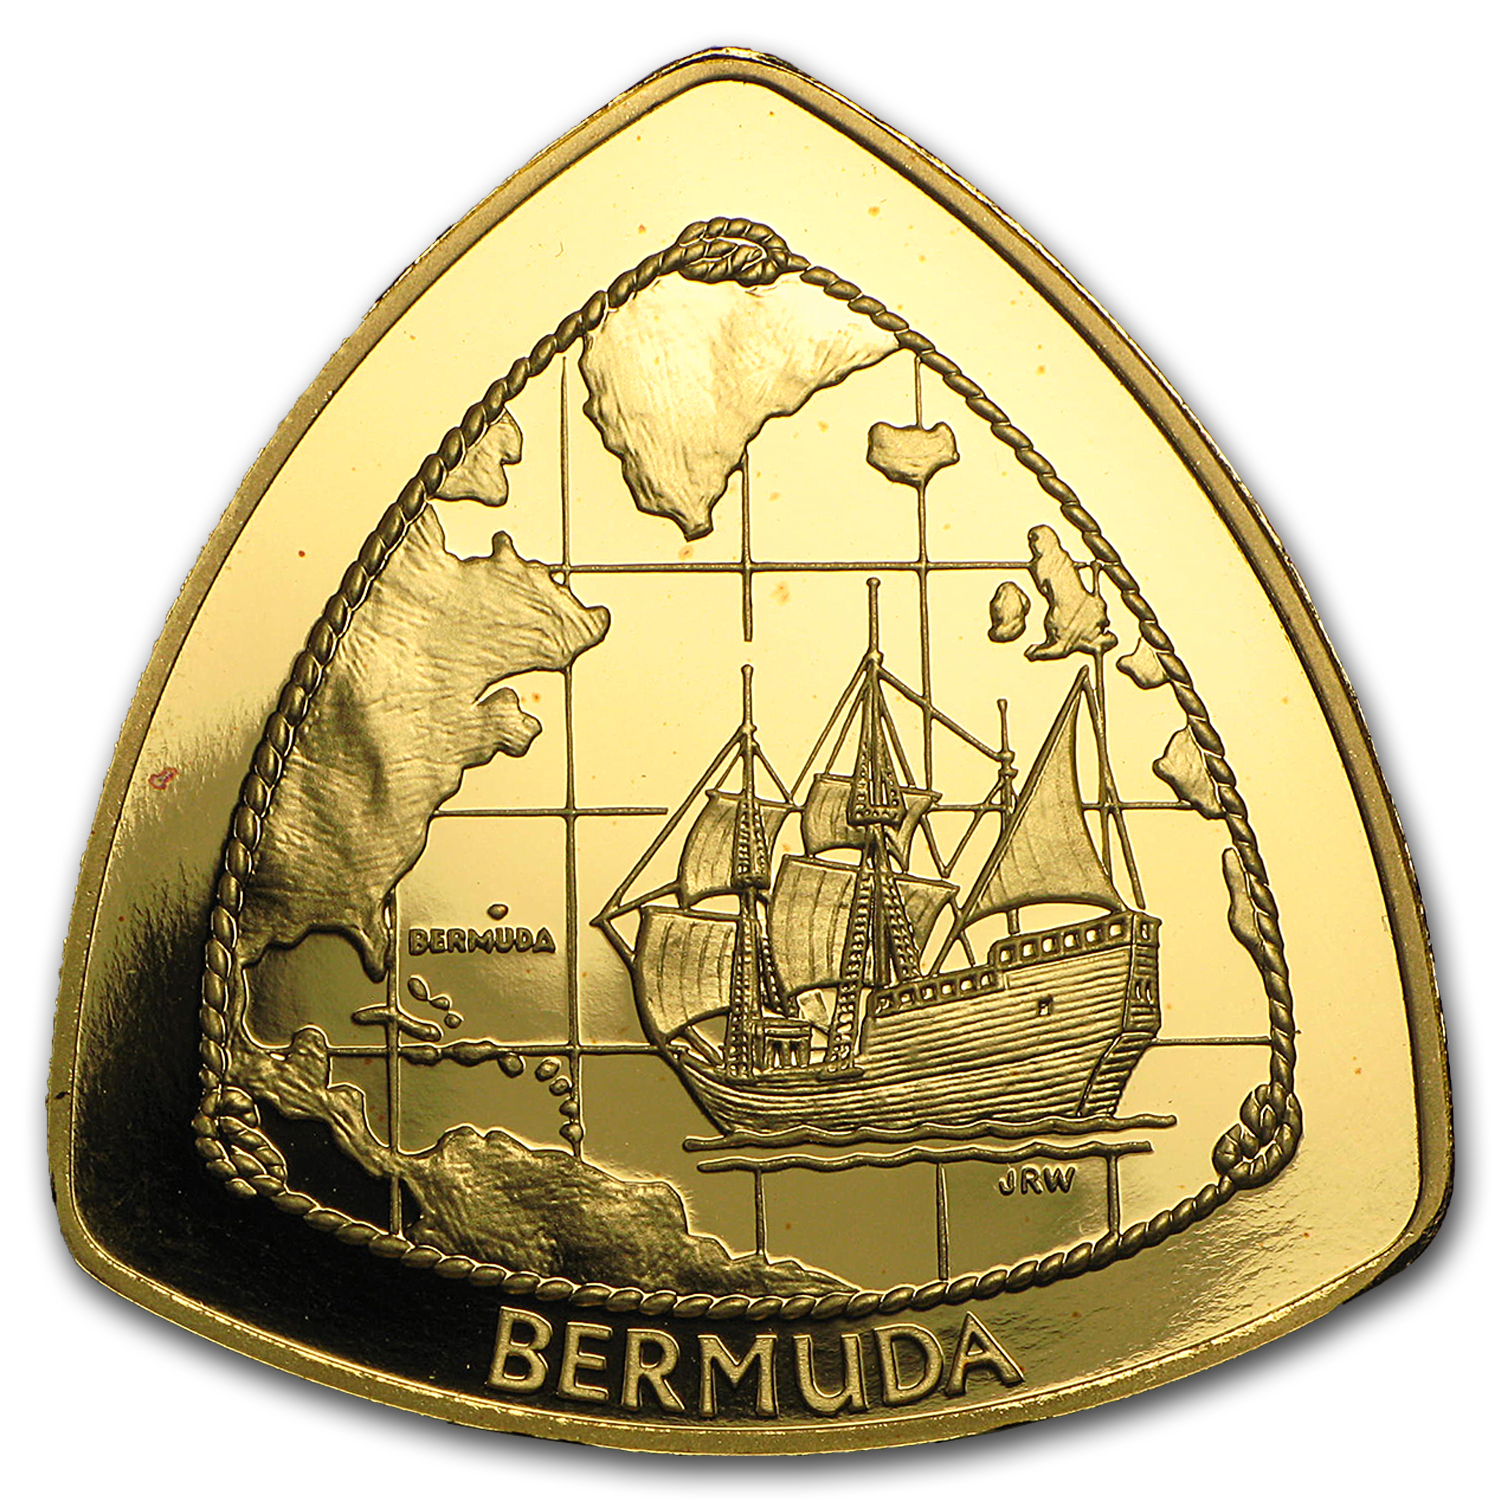 1998 Bermuda 1 Oz Proof Gold 60 Triangle Gold Coins